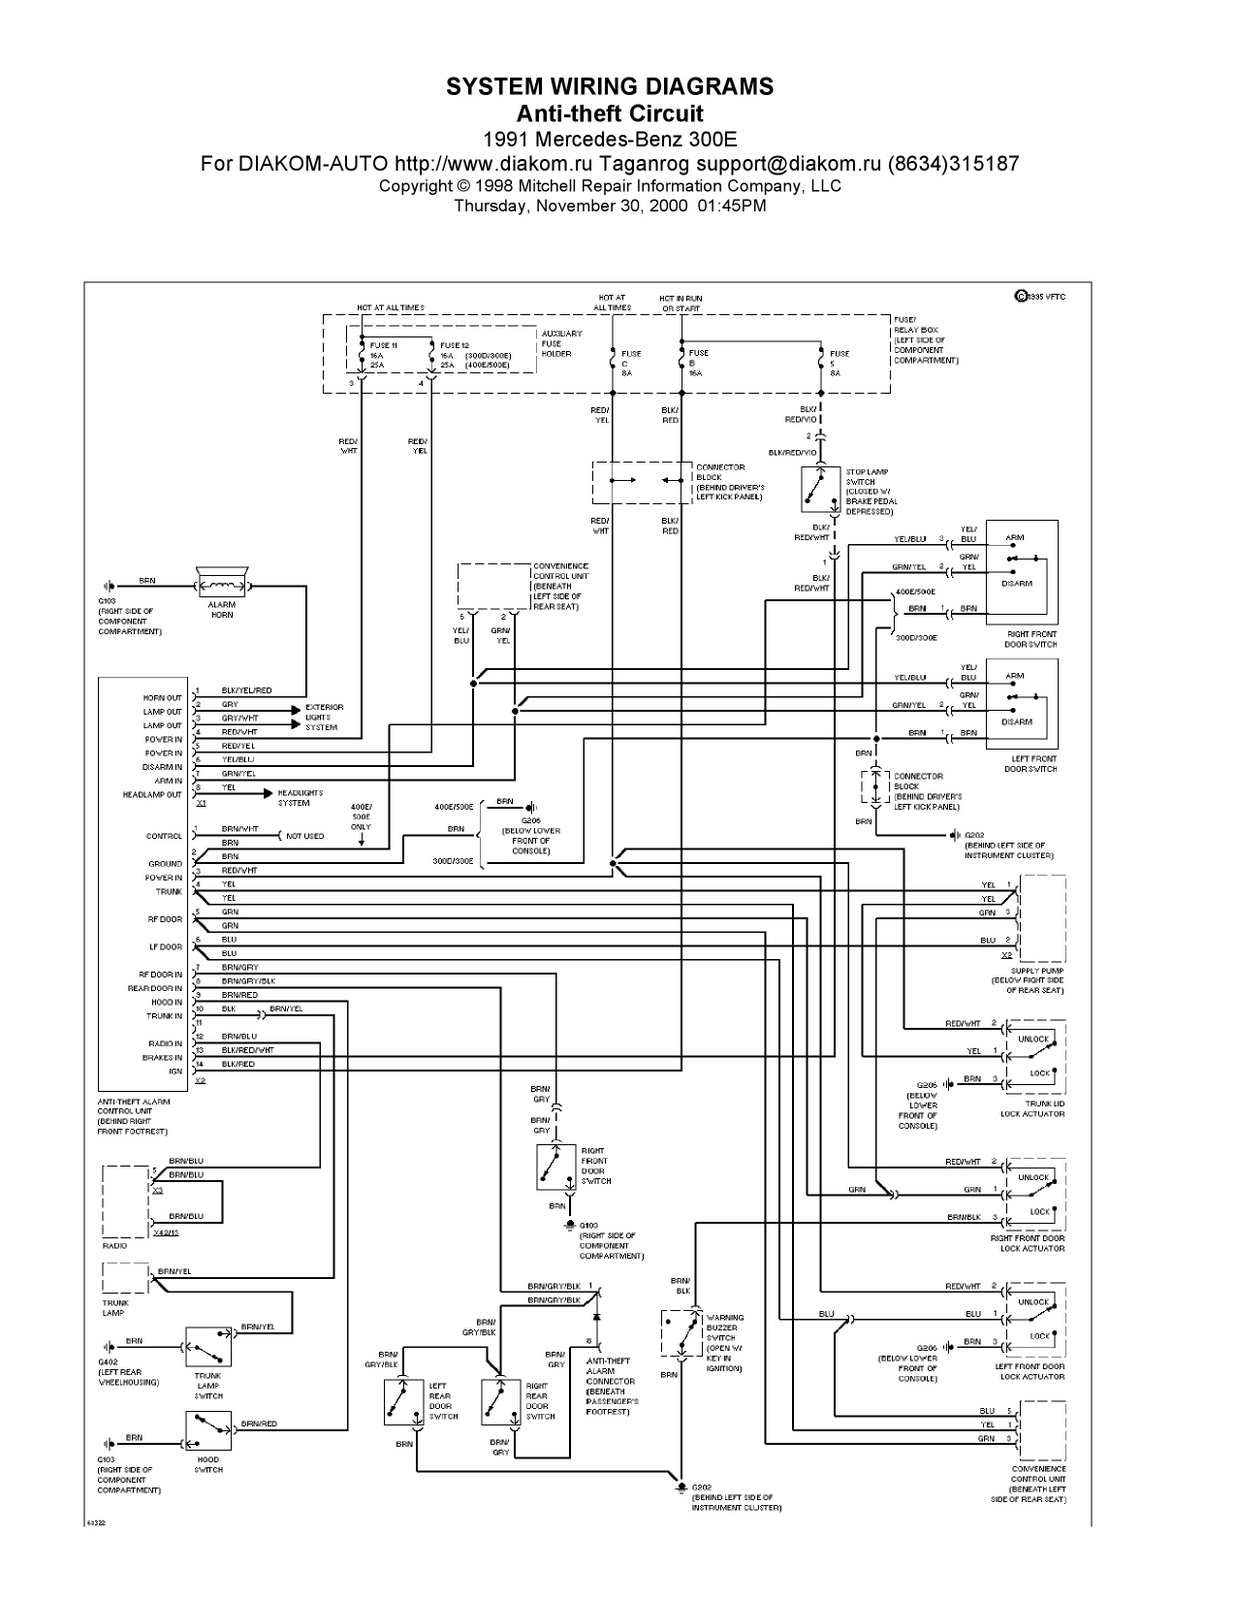 W638 Central Locking Wiring Diagram Land Rover Defender Alarm Diagramsmercedes Vito Libraries